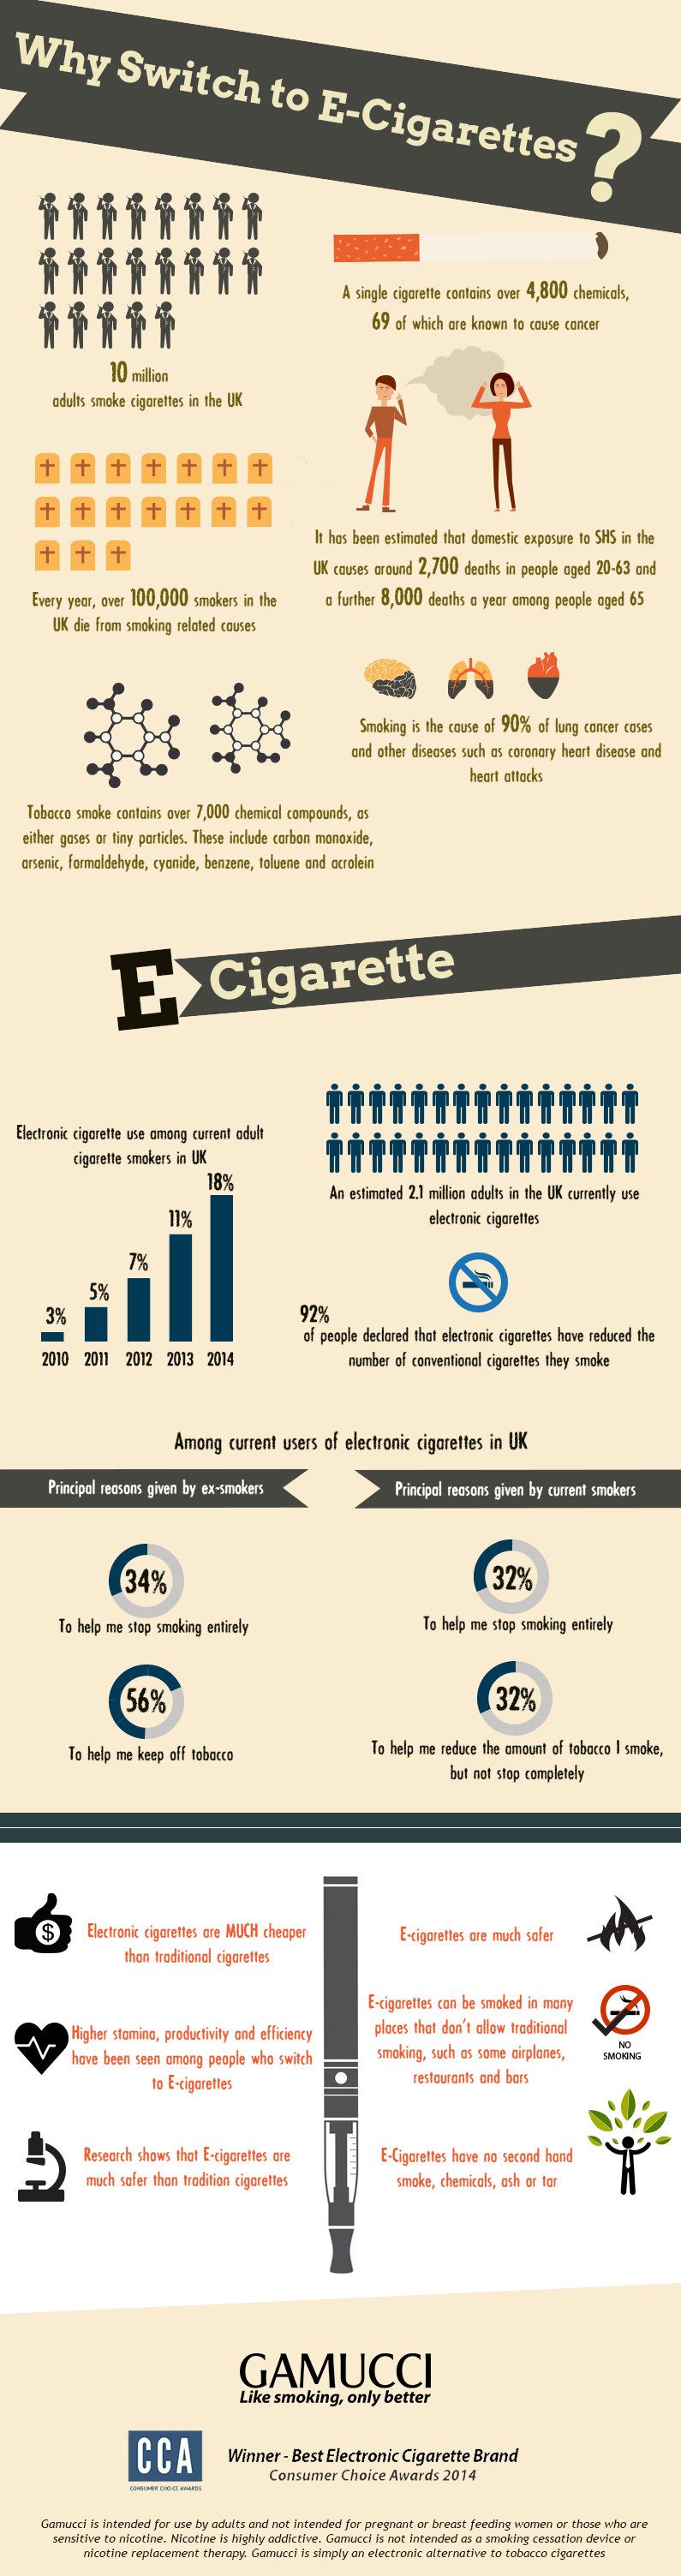 why switch to ecigarettes